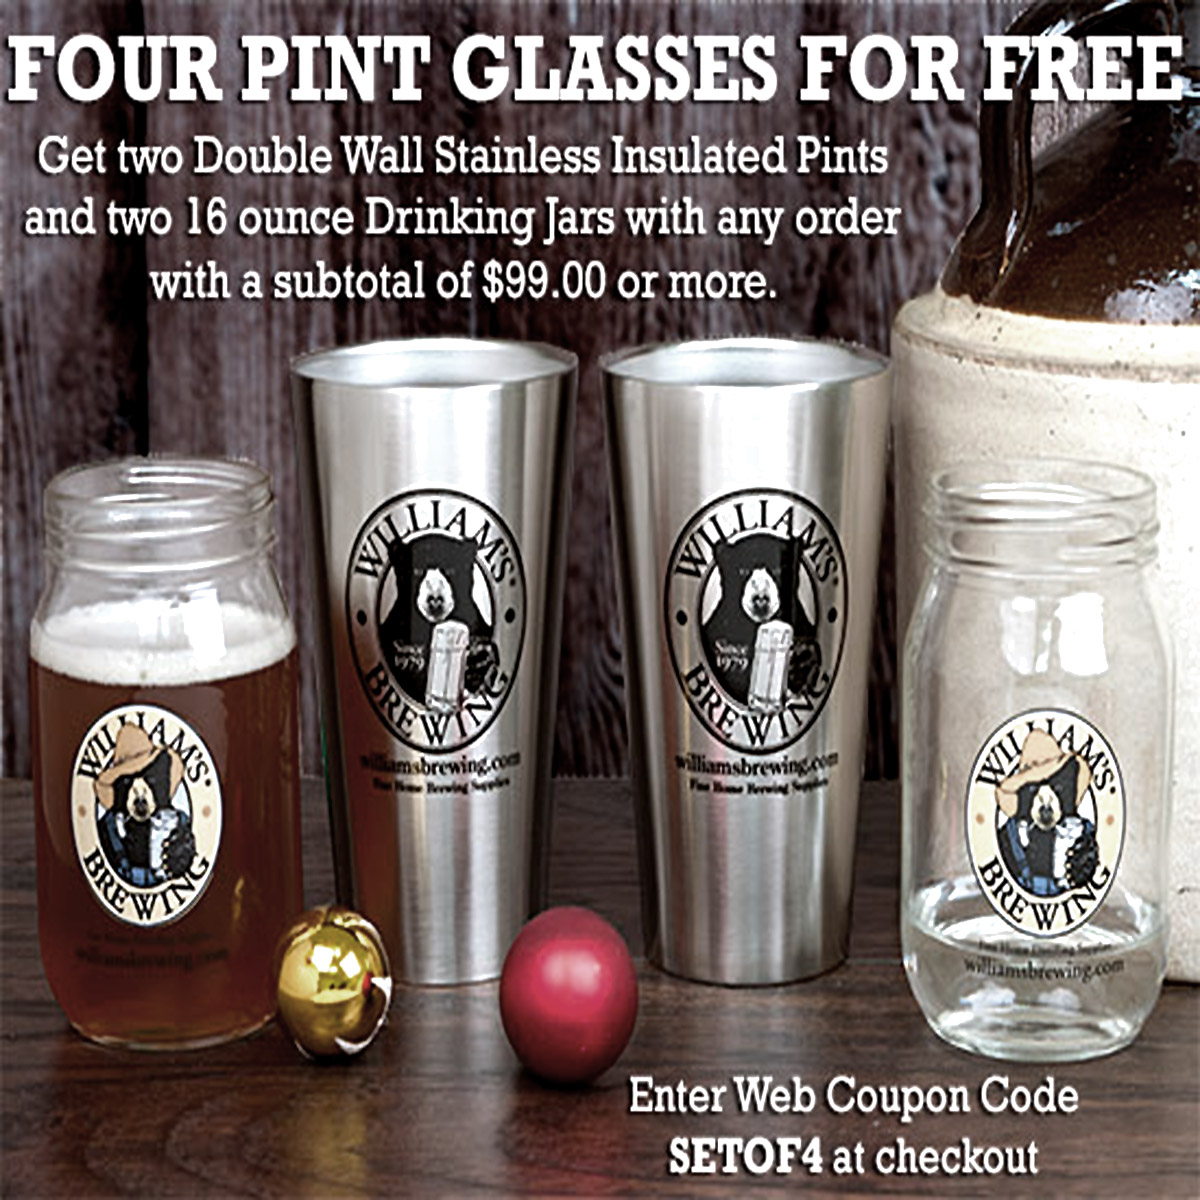 Williams Brewing Get 4 Free Beer Glasses With A $99 Purchase With This WilliamsBrewing.com Promo Code Coupon Code